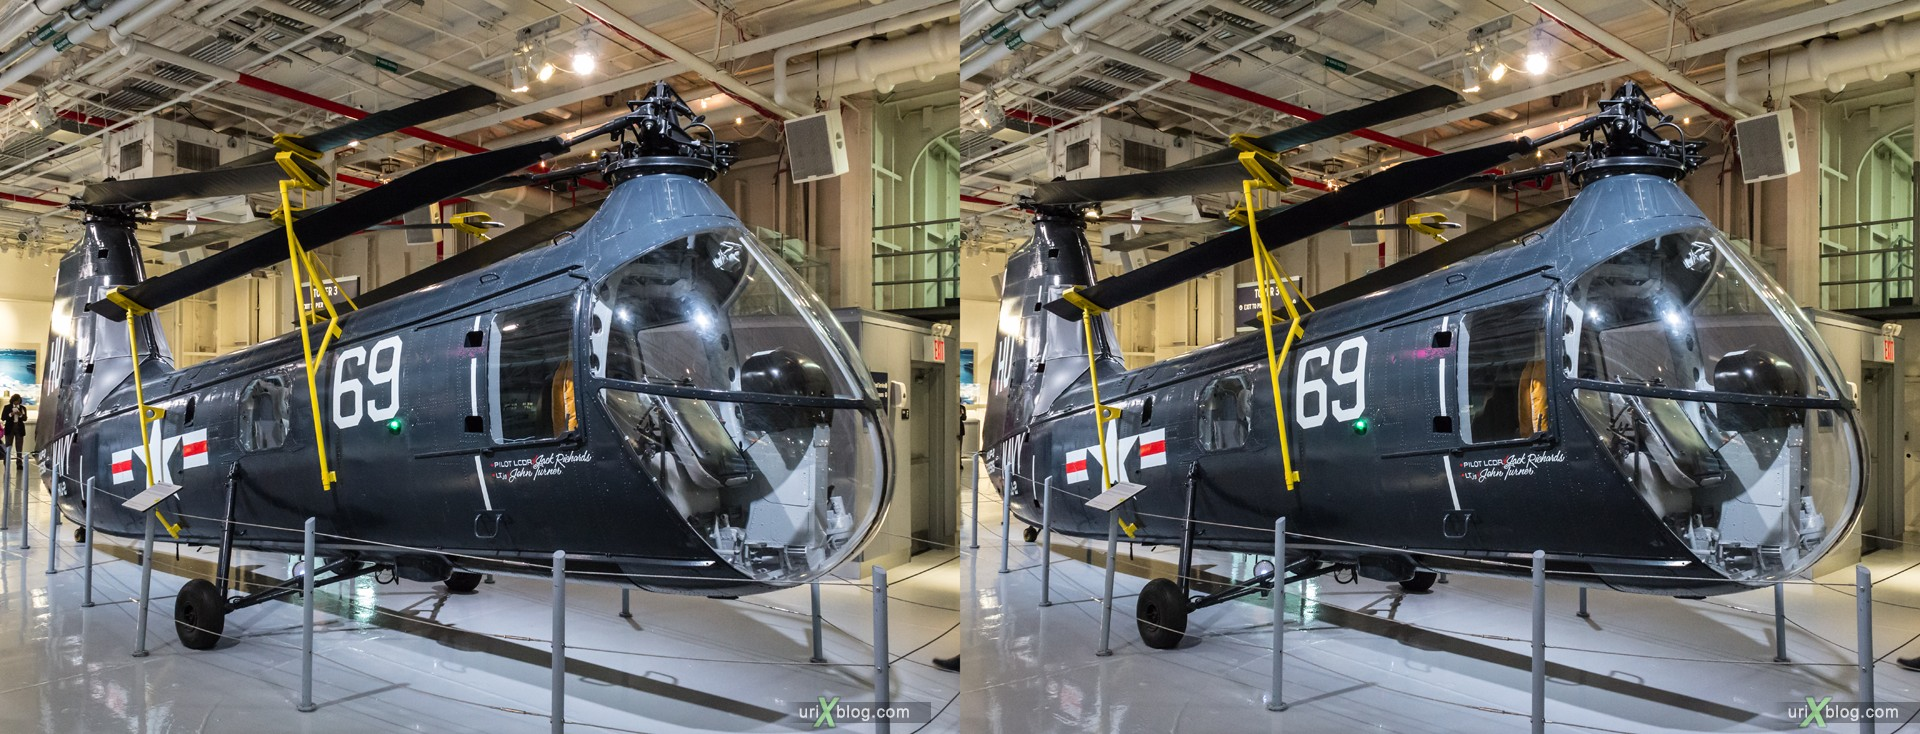 2013, USA, NYC, New York, aircraft carrier Intrepid museum, HUP-2 Retriever, sea, air, space, ship, submarine, aircraft, airplane, helicopter, military, 3D, stereo pair, cross-eyed, crossview, cross view stereo pair, stereoscopic